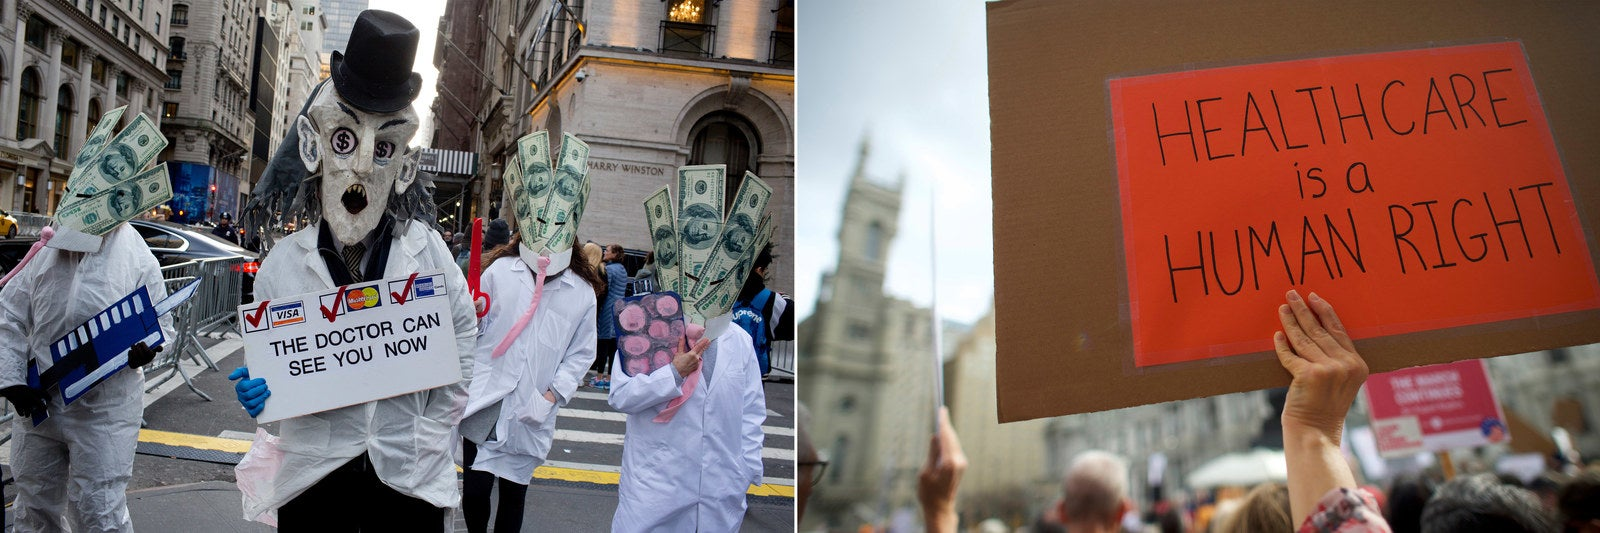 Left, protestors in New York, Jan. 2017. Right, protestors demonstrate at a health care rally in Philadelphia, Feb. 2017.